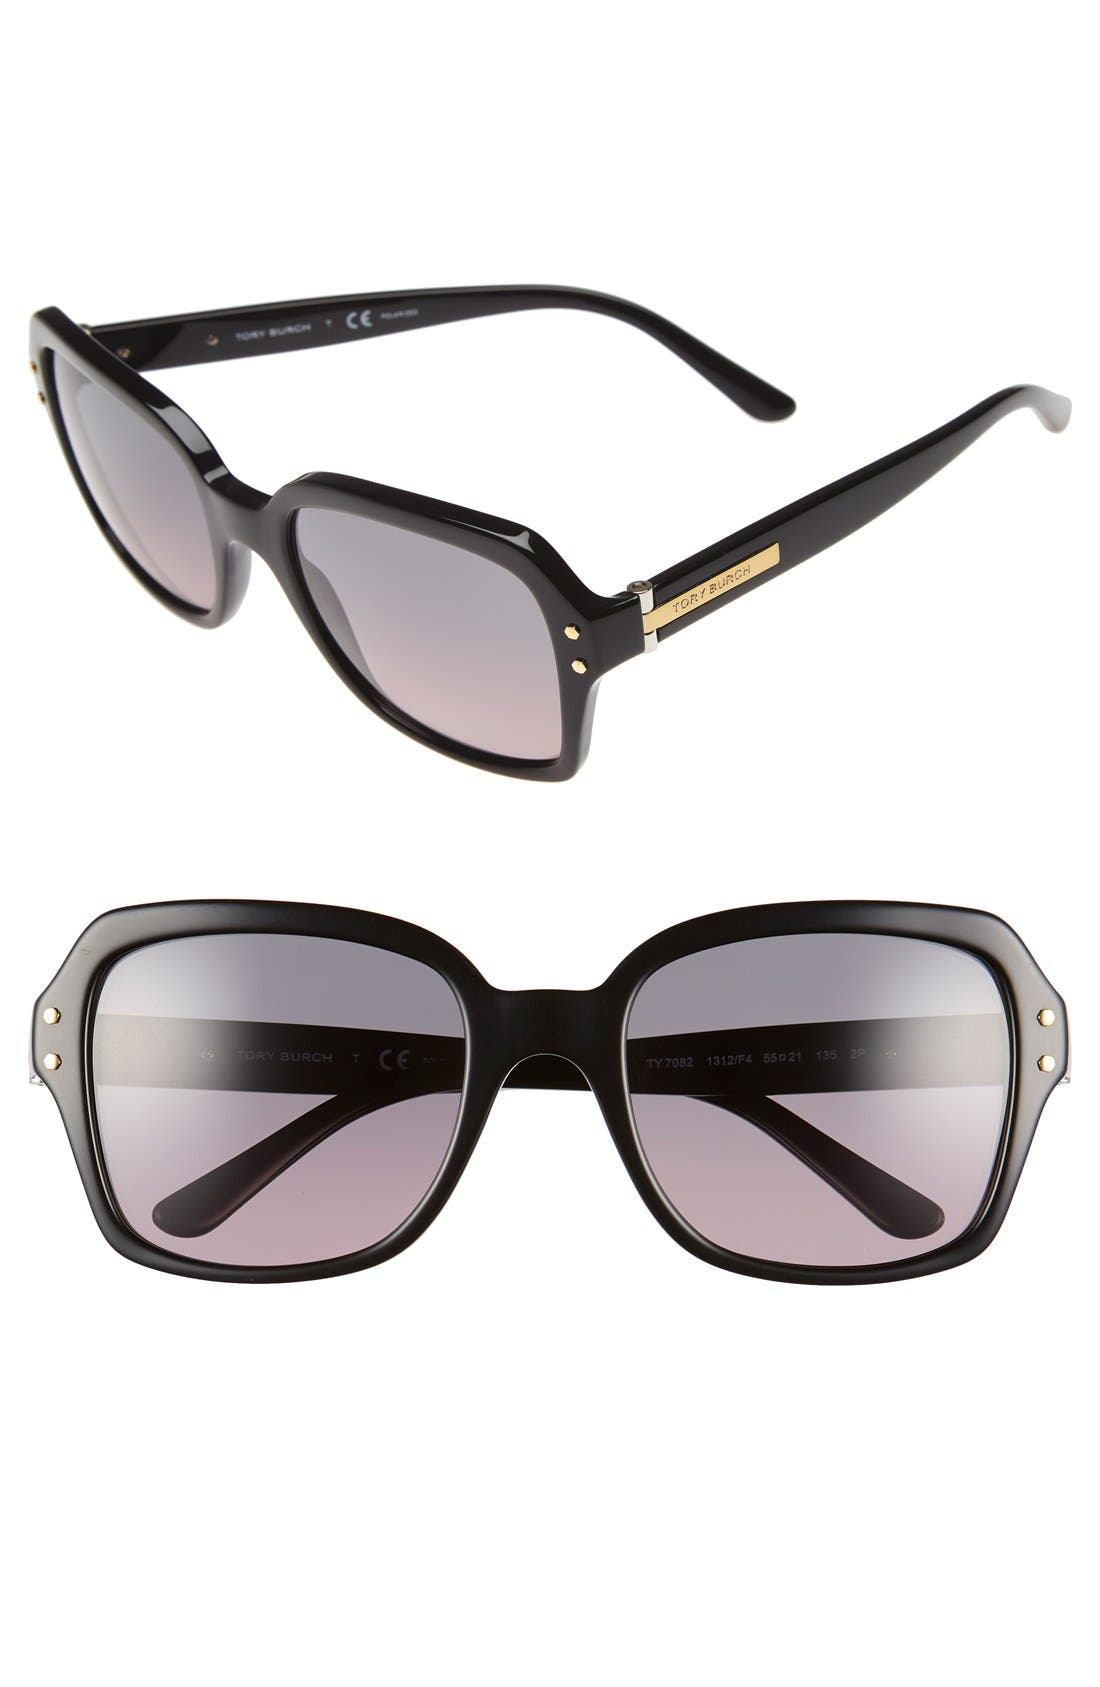 Alternate Image 1 Selected - Tory Burch 55mm Polarized Sunglasses